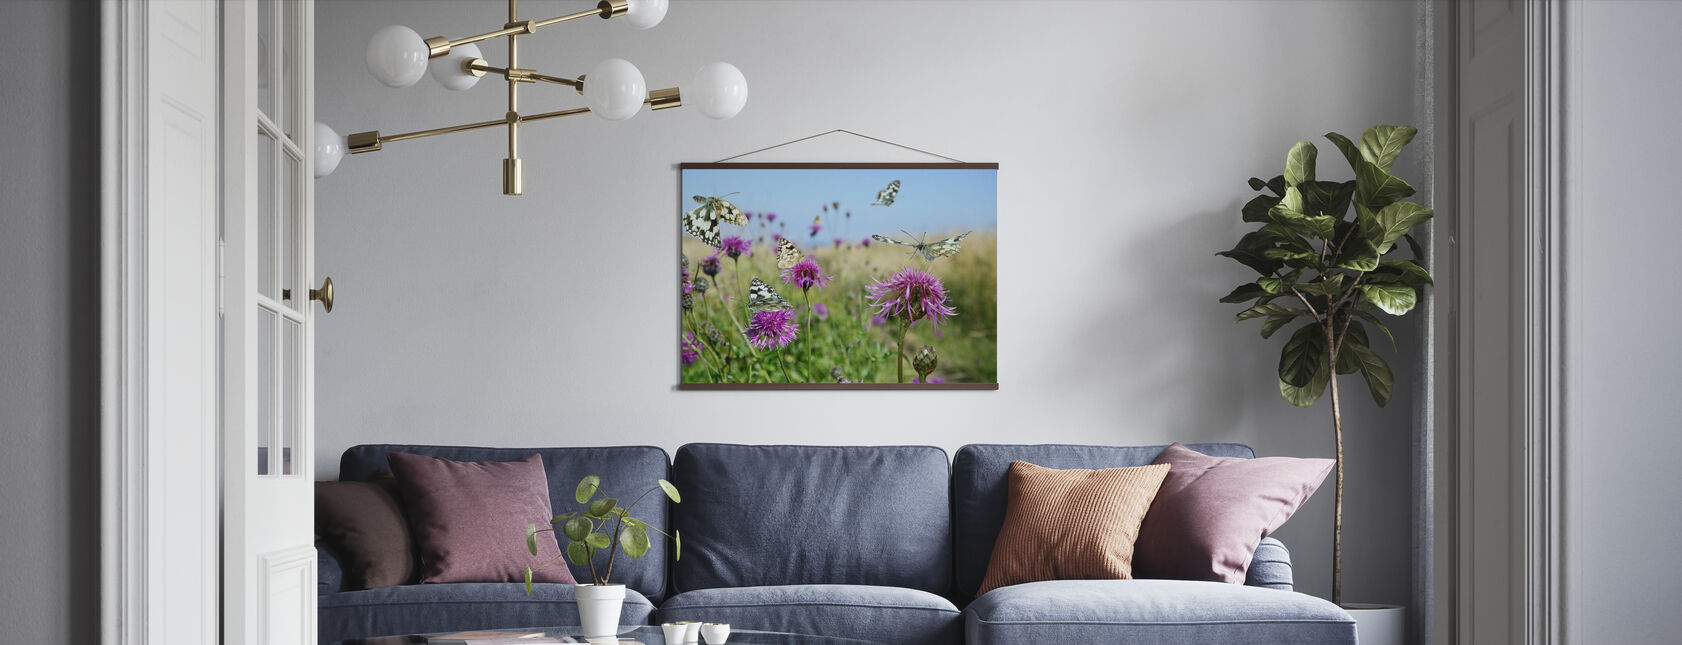 Marbled White Butterflies - Poster - Living Room